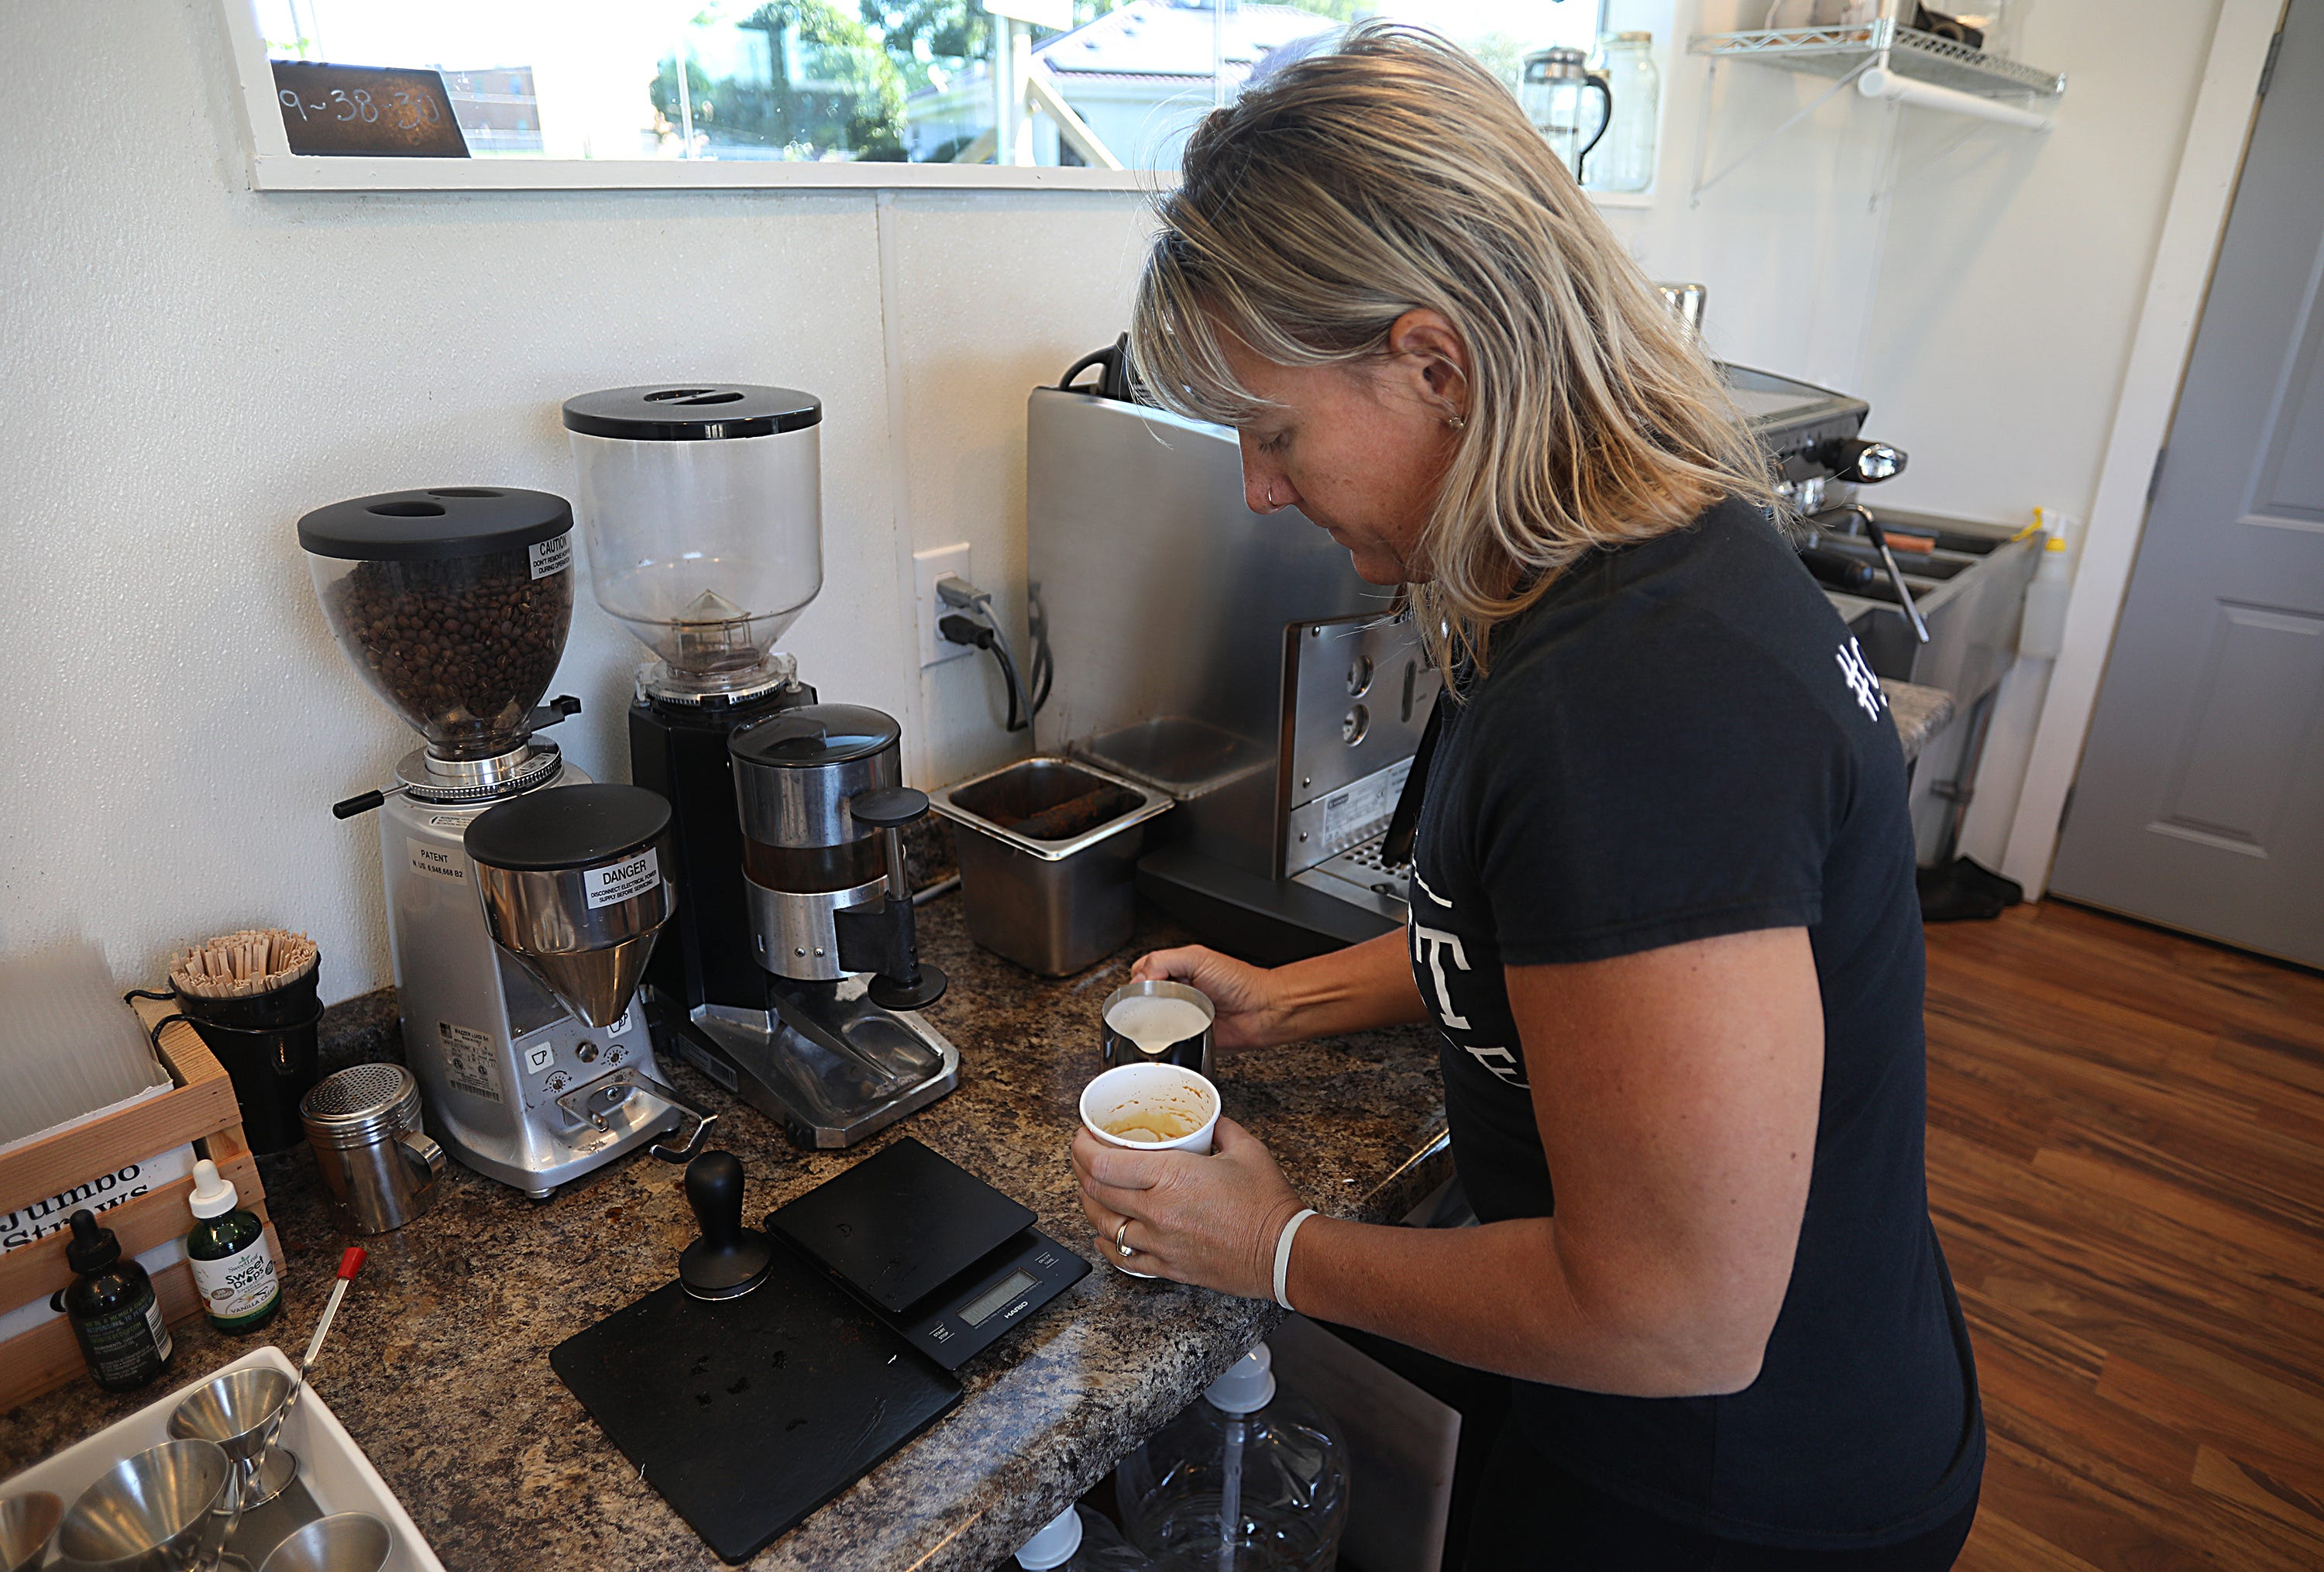 Caroline Bogema and her husband, Jason, bought a tiny house trailer and with the help of their four kids built the coffee shop from the ground up.